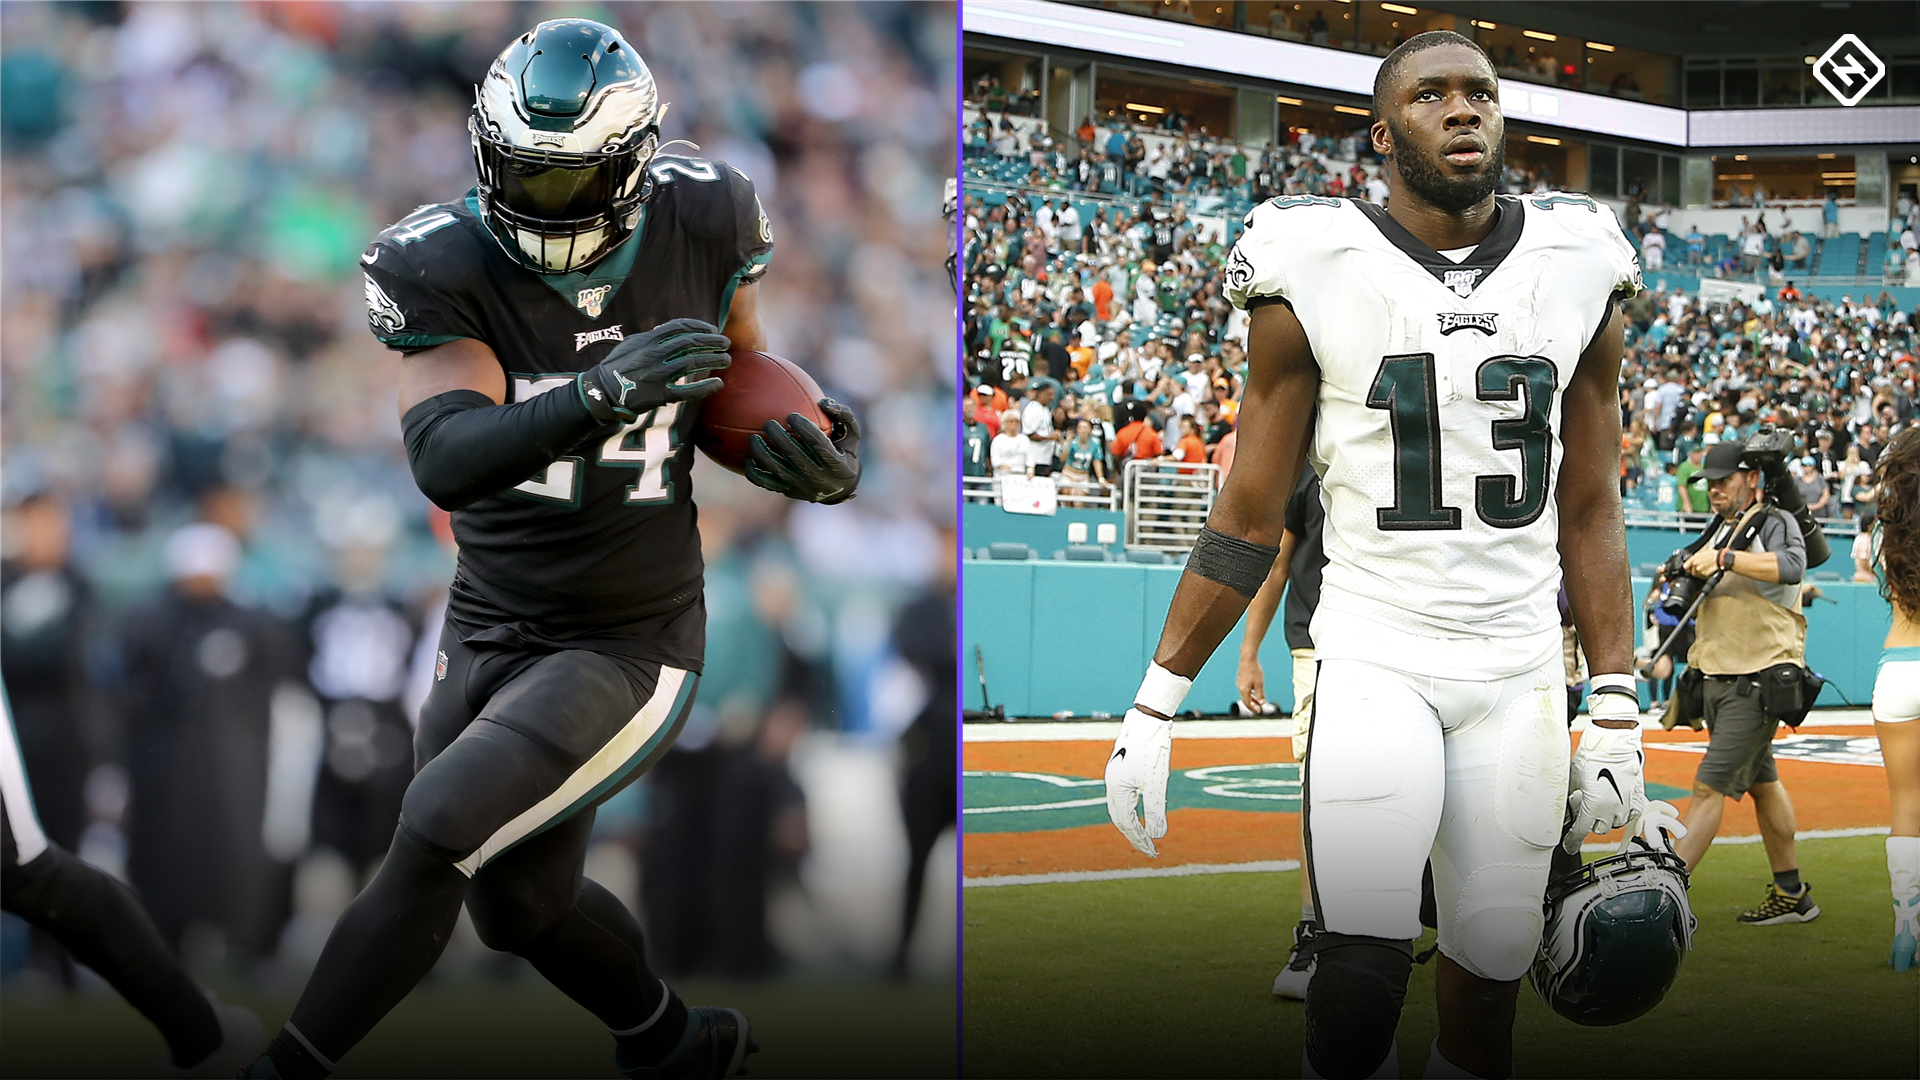 Fantasy Injury Updates: Is Jordan Howard playing Monday night? Is Nelson Agholor playing Monday night? (Updated)